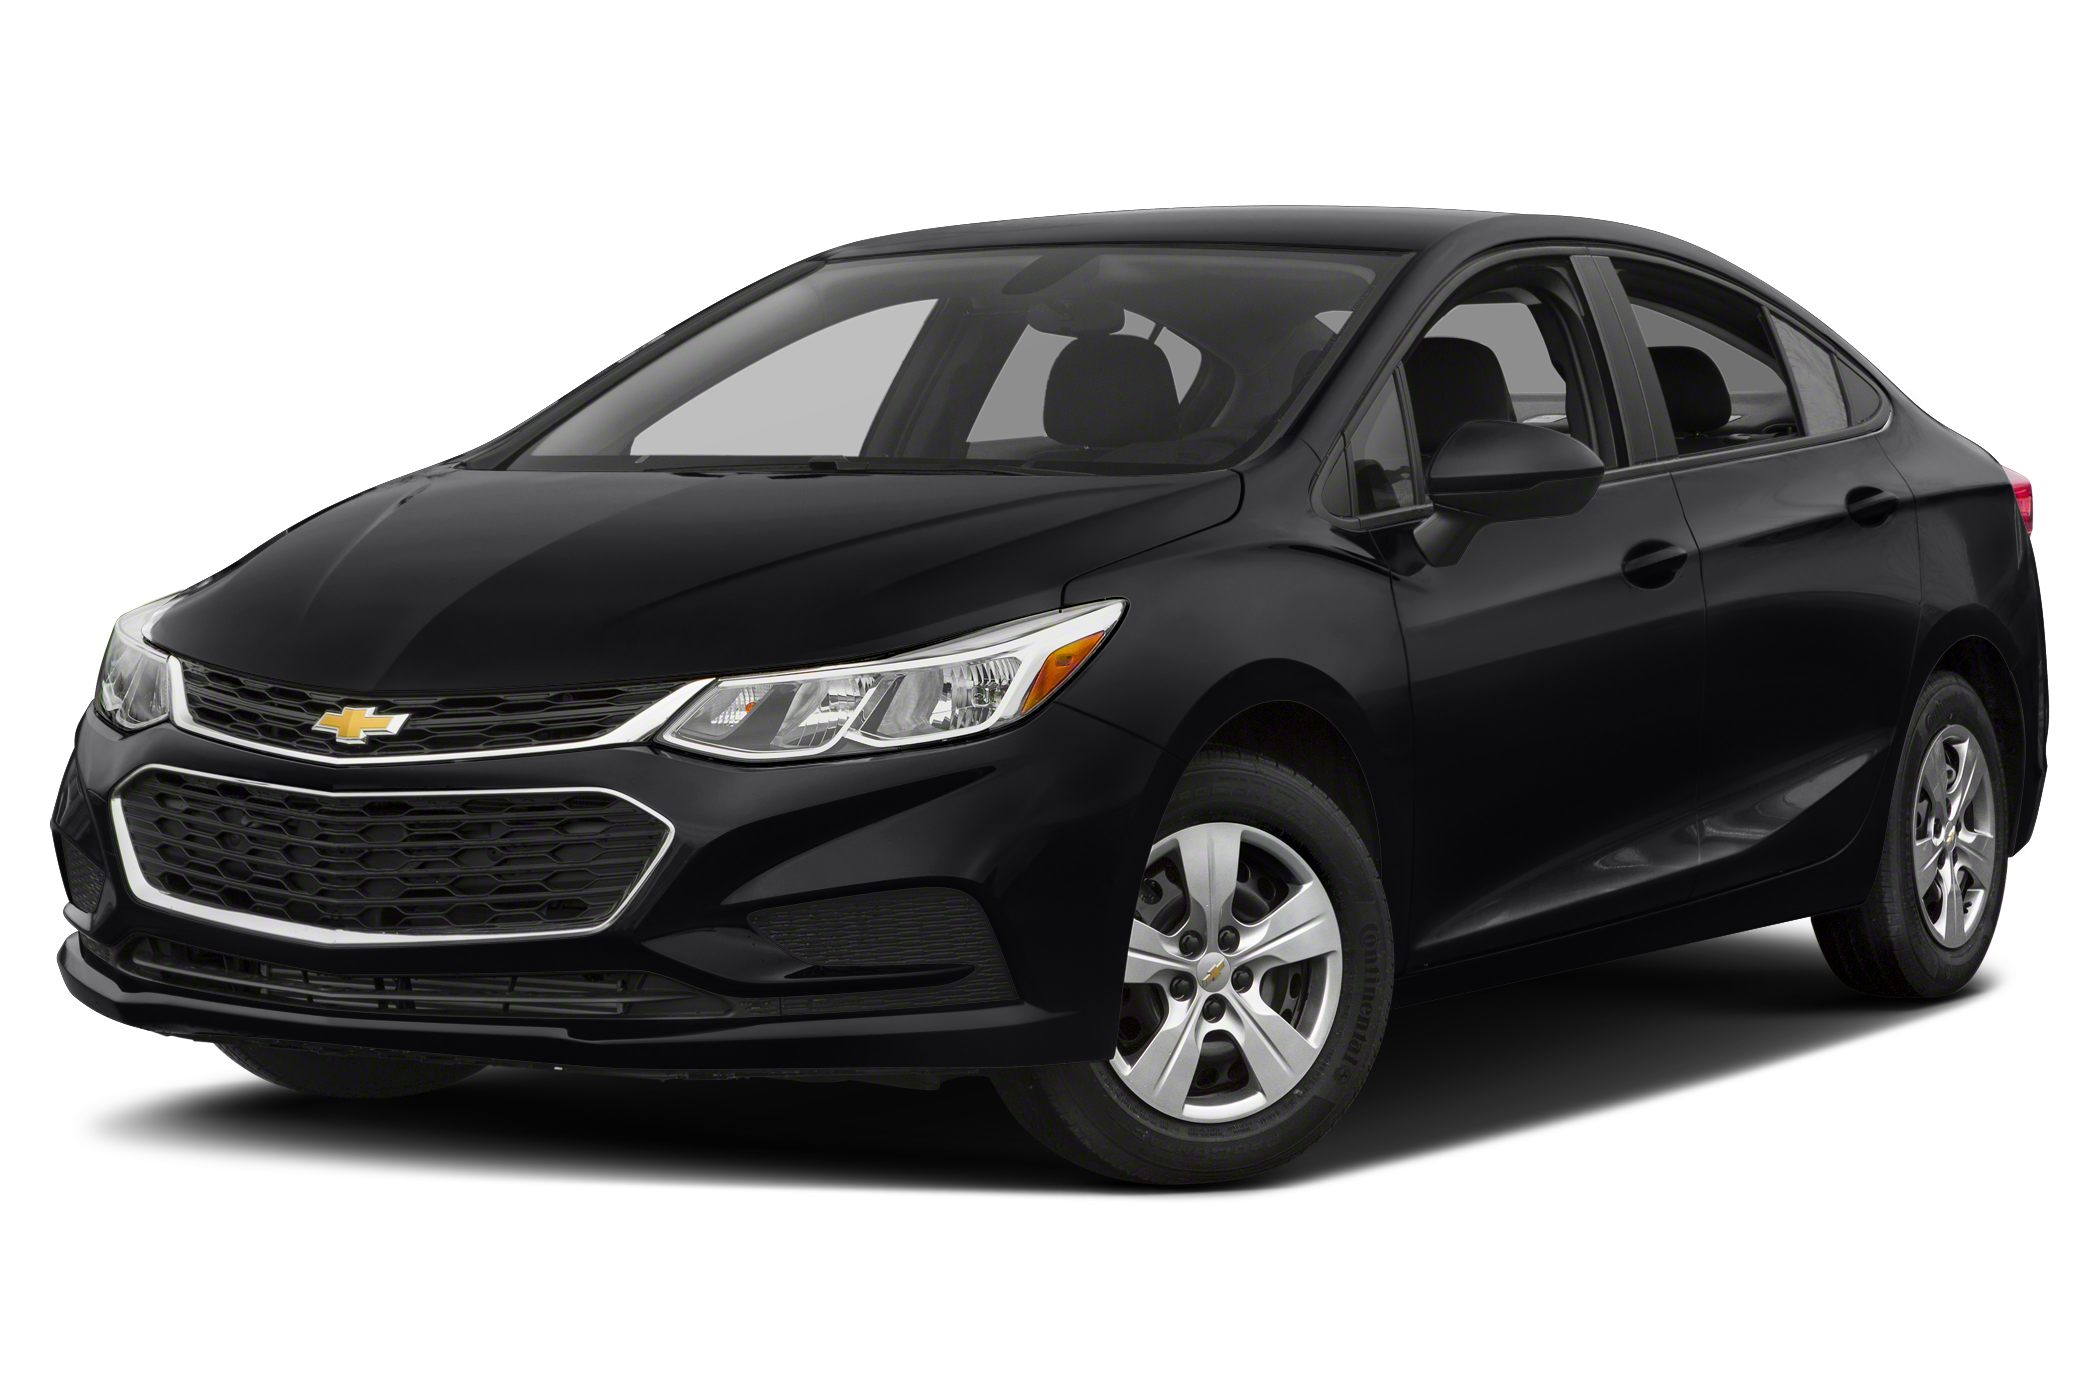 2018 chevrolet cruze ls for sale vin 1g1bc5sm2j